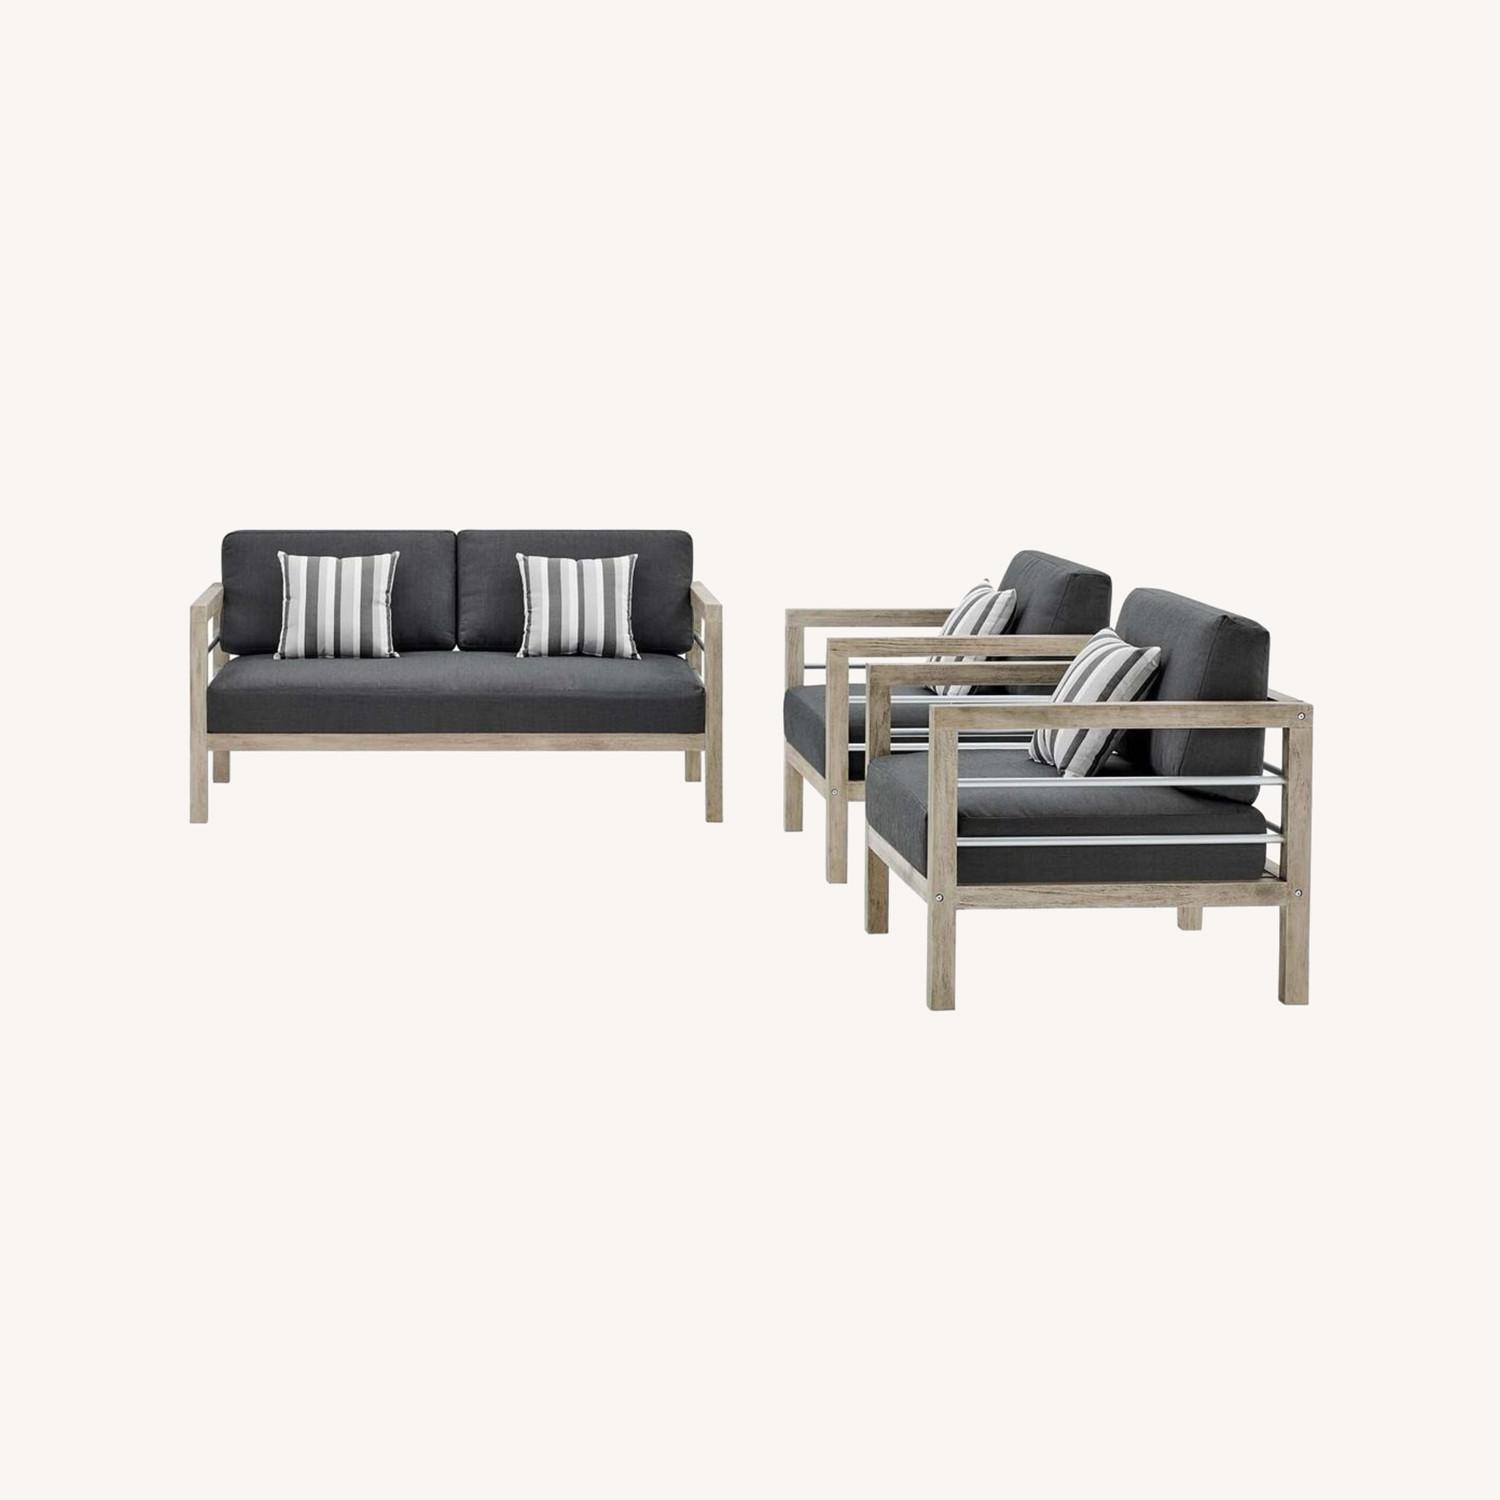 3-Piece Outdoor Patio Set In Light Gray Finish - image-8